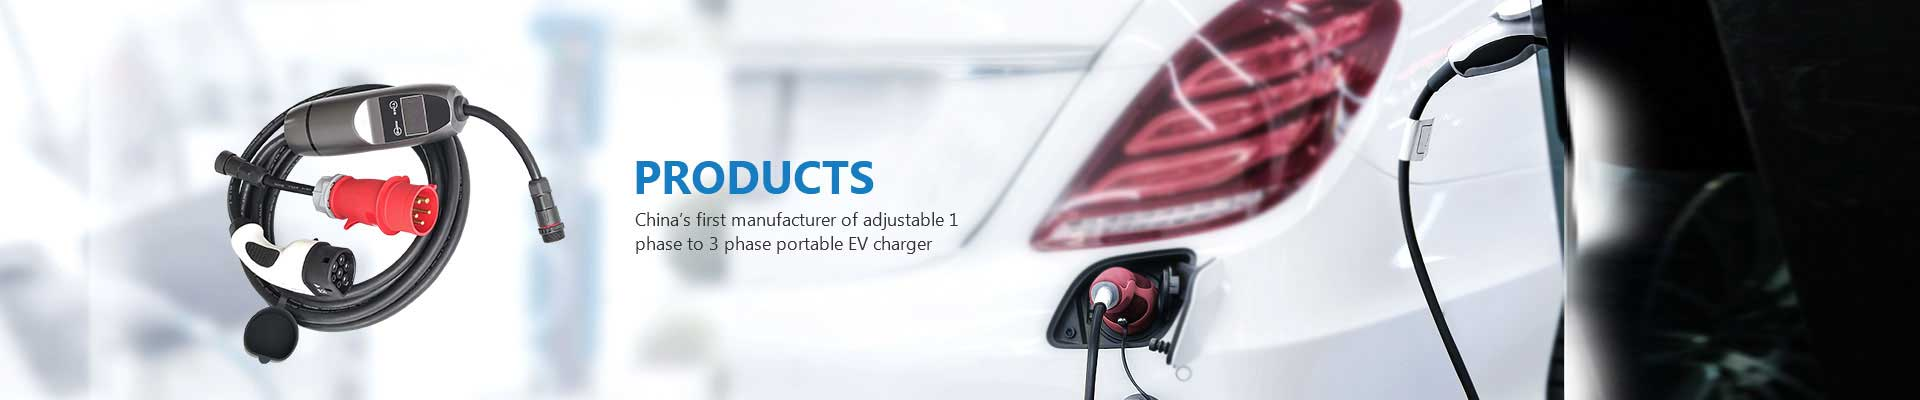 ev mobile charger, type 2 ev charger, ev charging cable in China